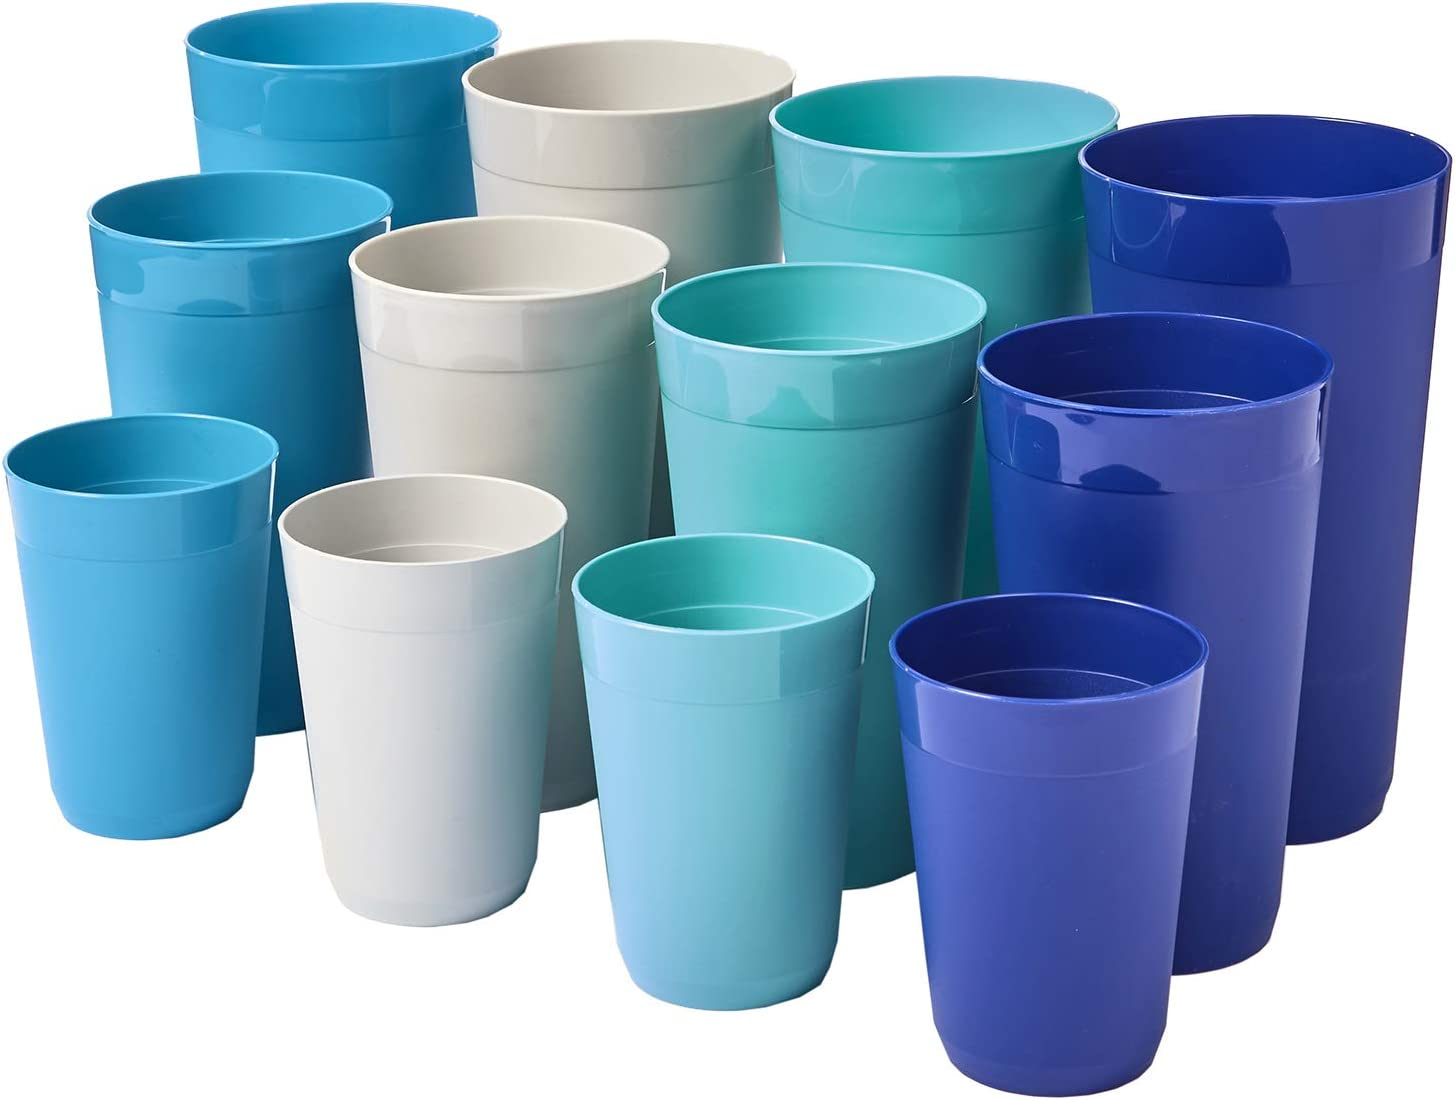 12-Piece Newport Unbreakable Plastic Tumblers | four each 10-ounce, 20-ounce, and 32-ounce in 4 Coastal Colors